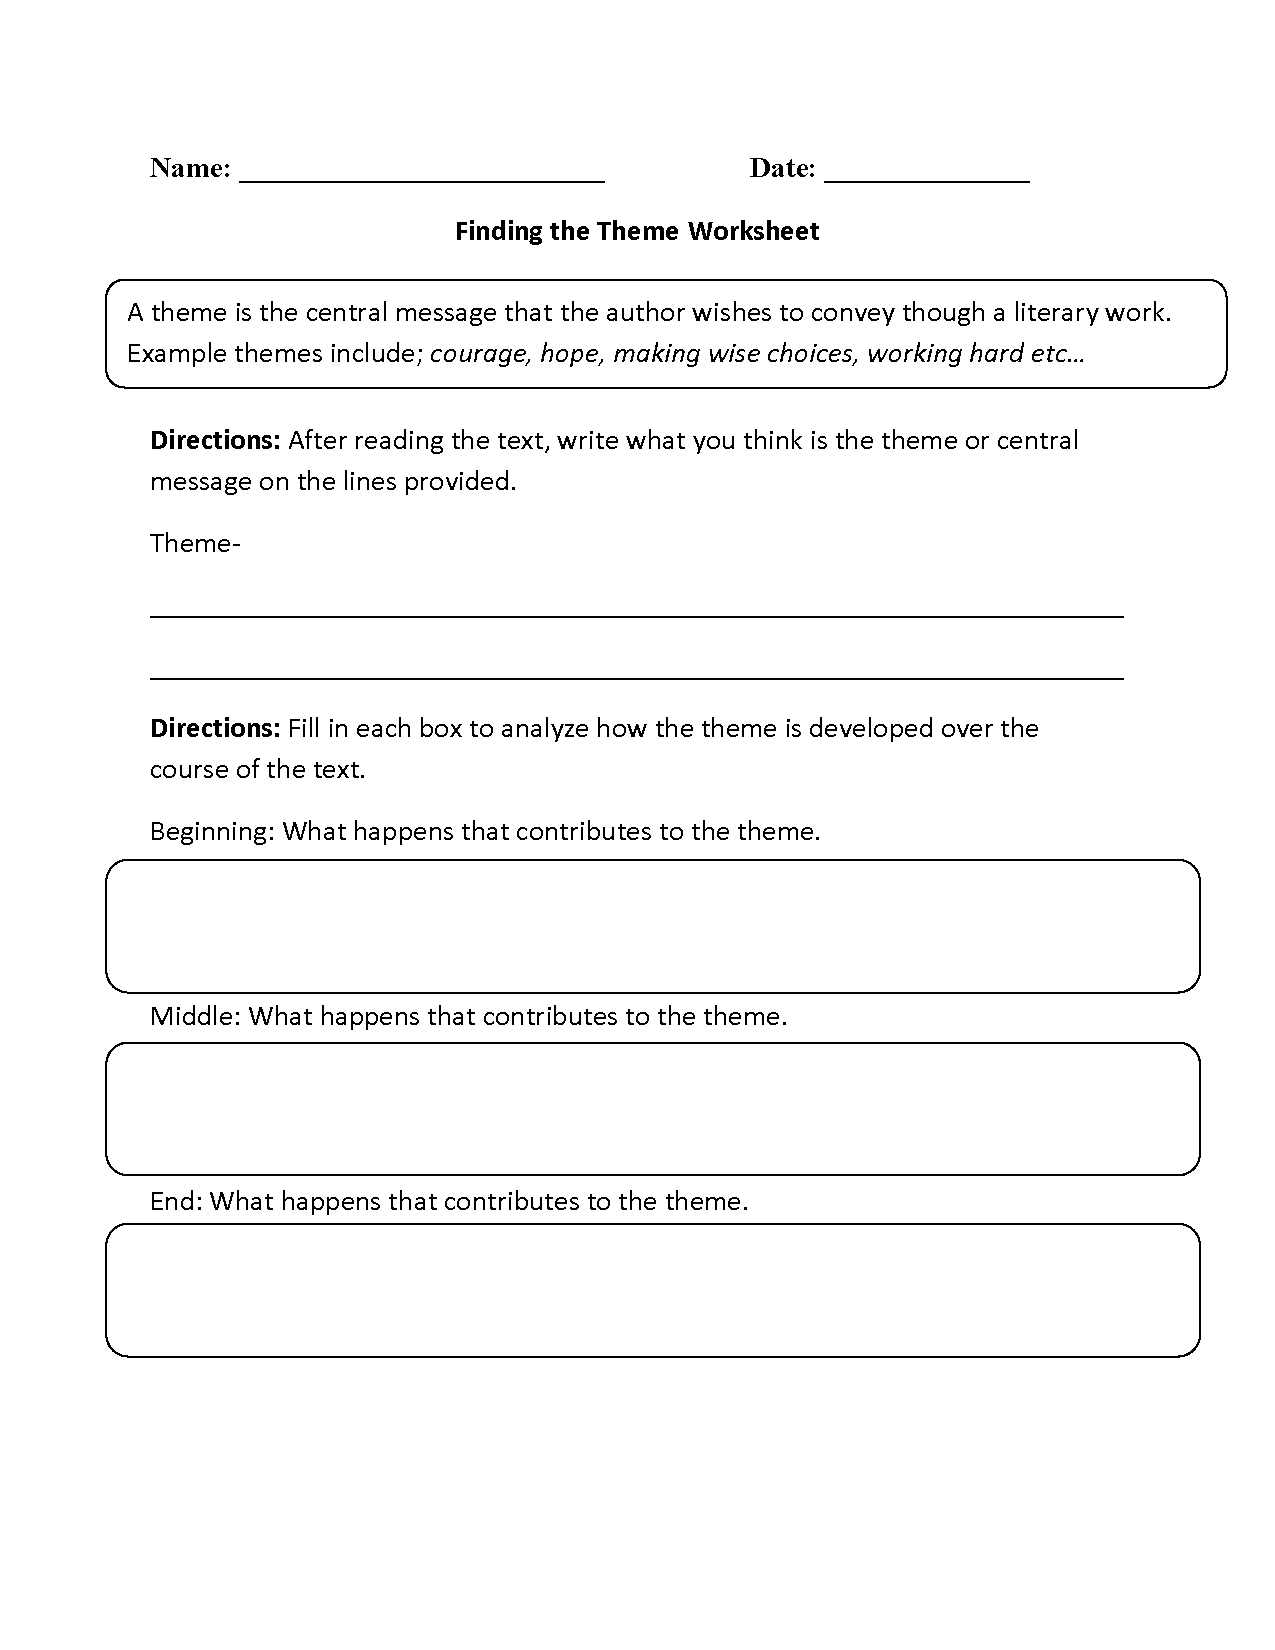 worksheet Citing Evidence Worksheet englishlinx com theme worksheets worksheets